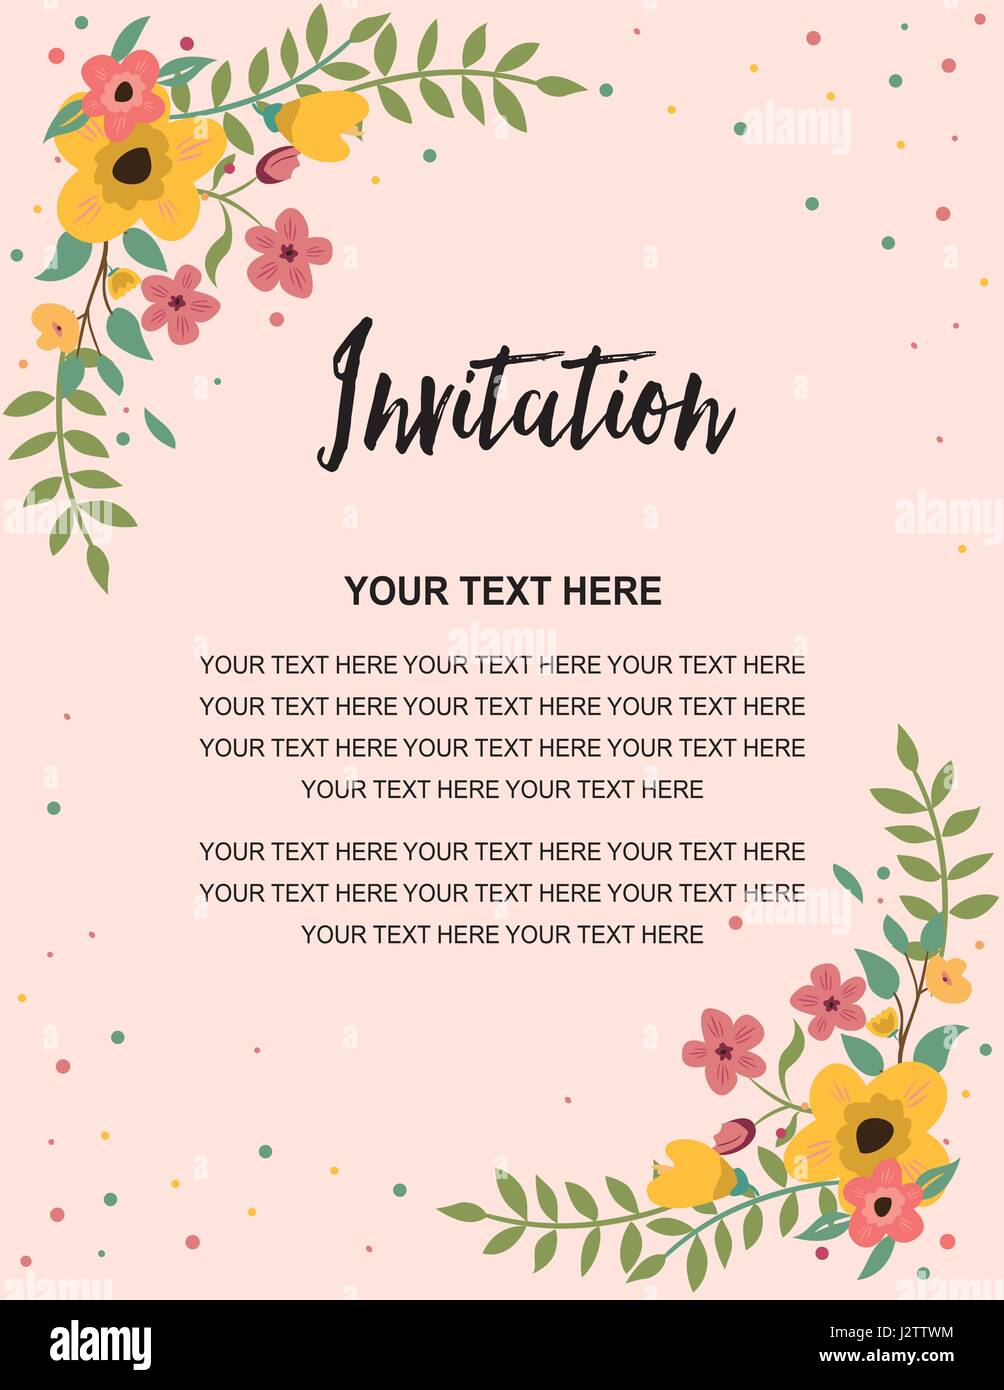 Wedding Invitation Greeting Card Template. Vintage Floral Design ...